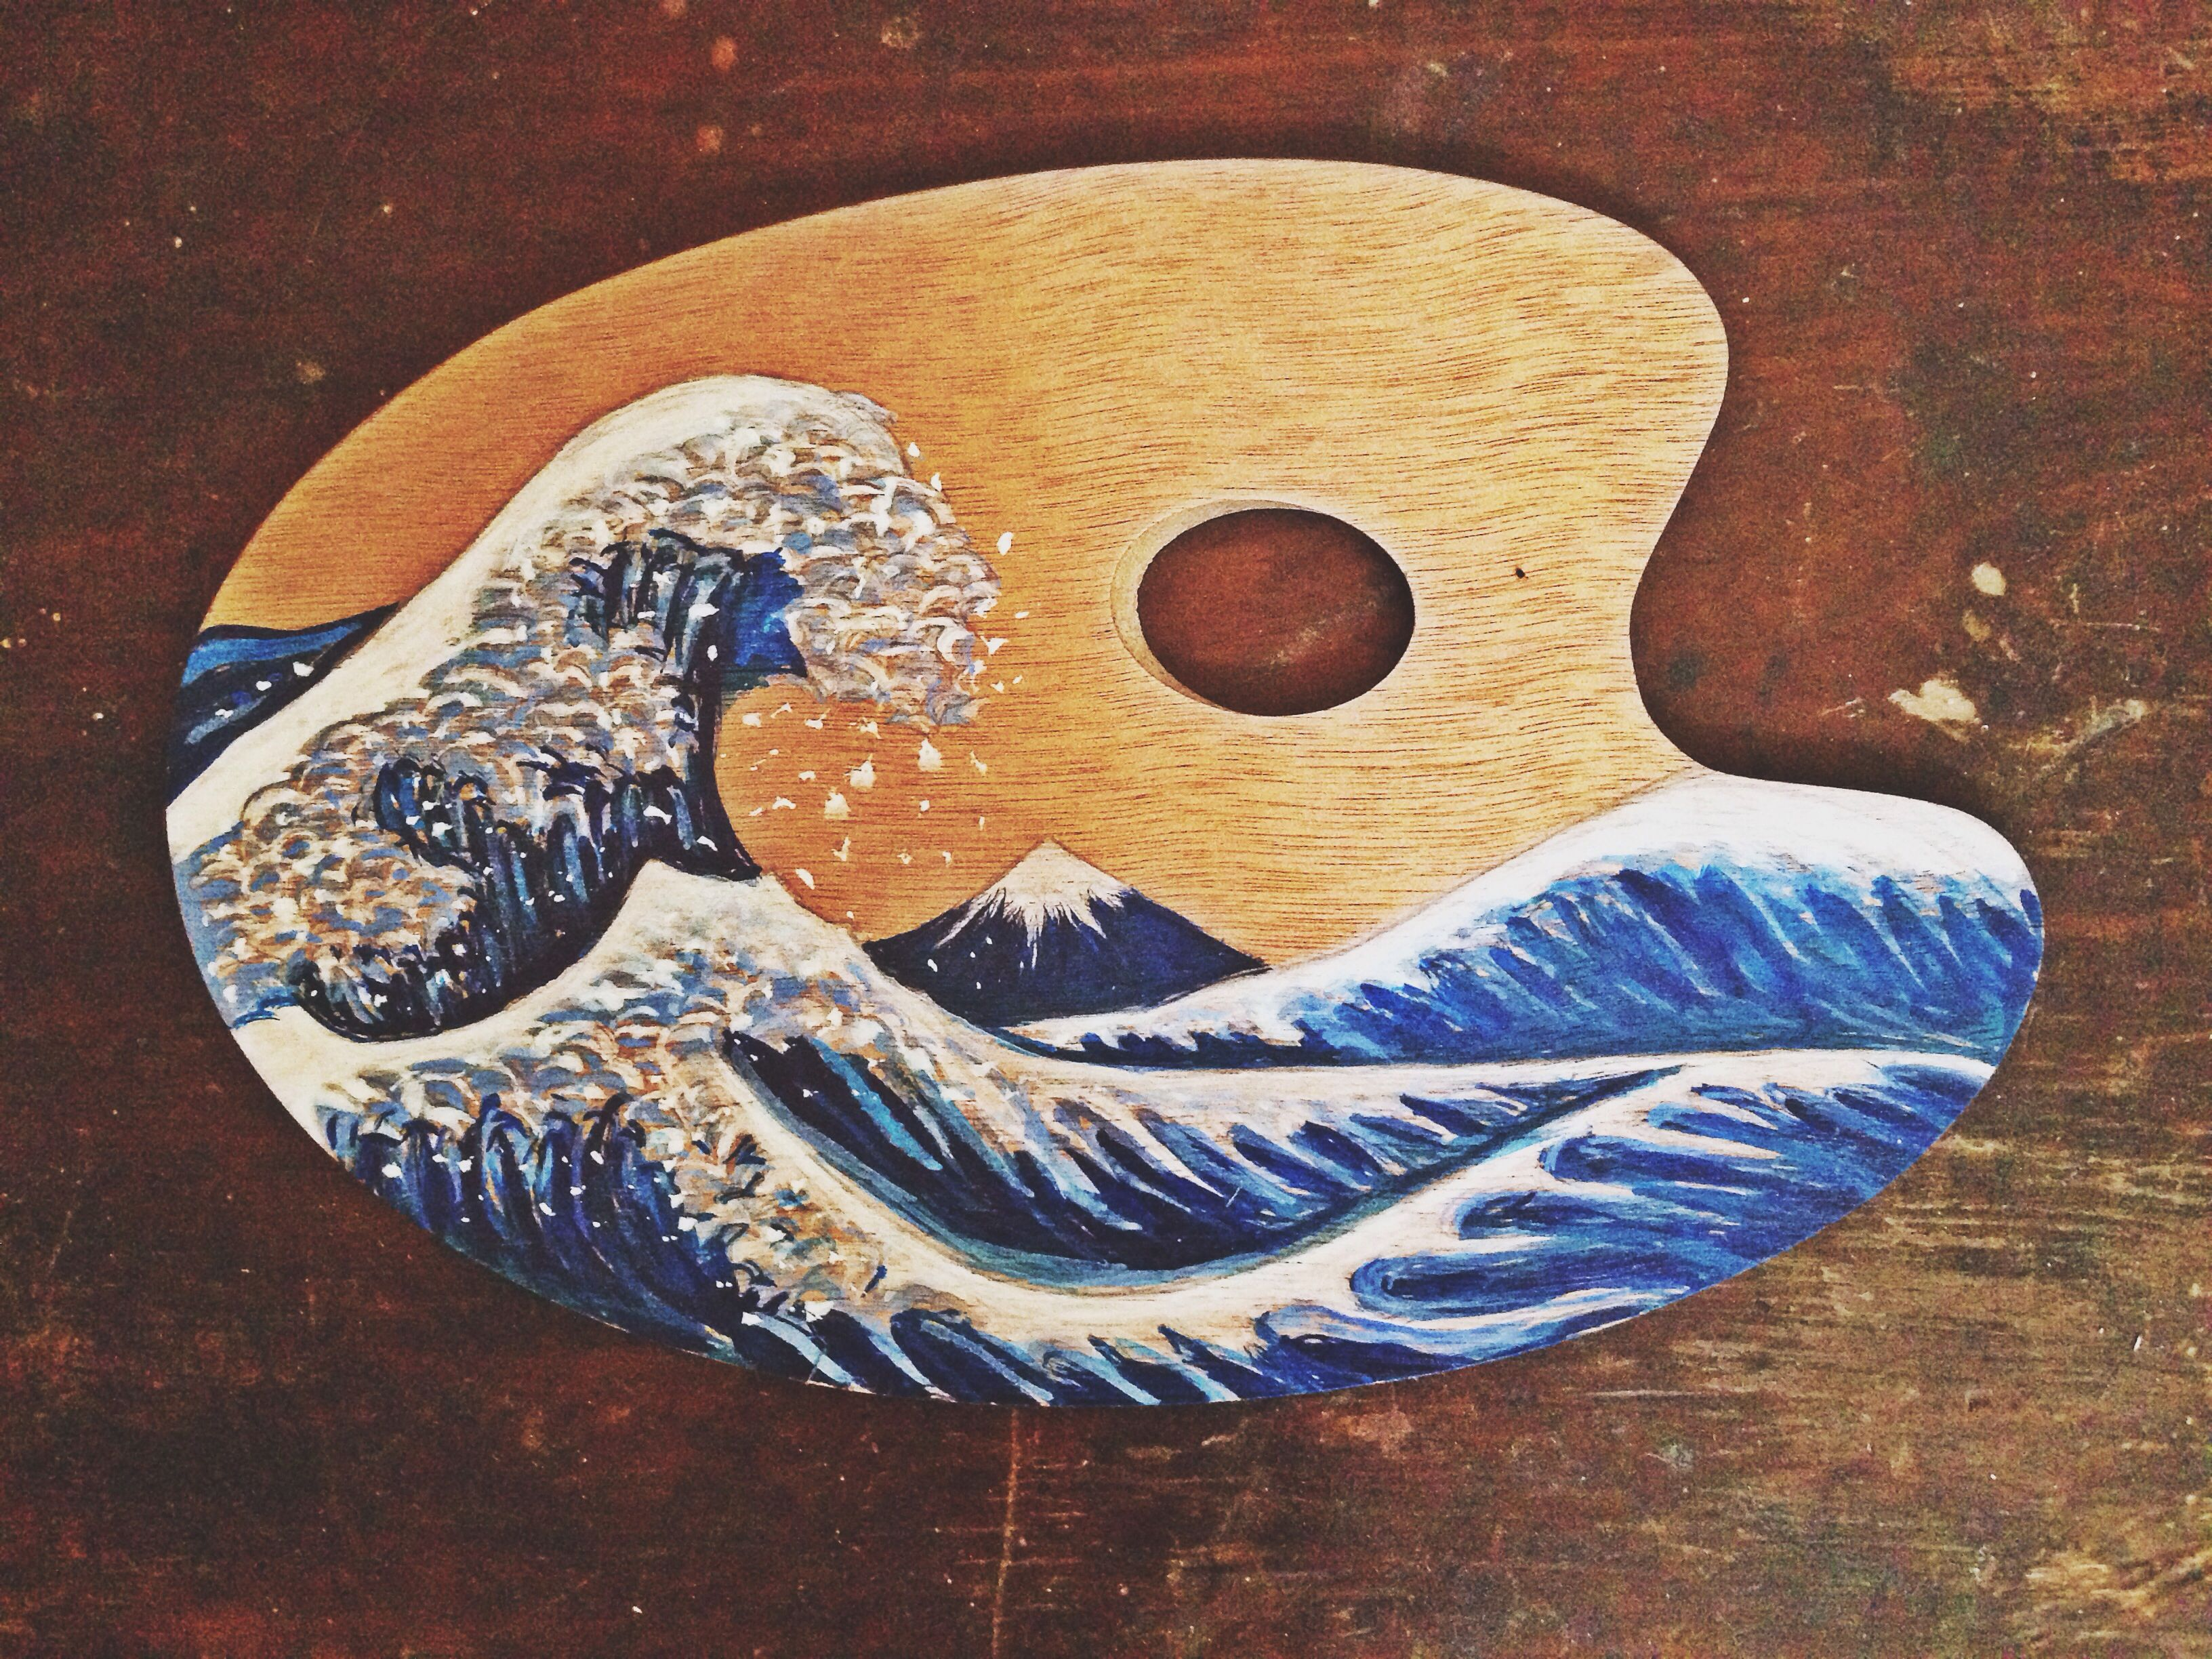 The Great Wave of Kanagawa #PaintersPalette #Hokusai